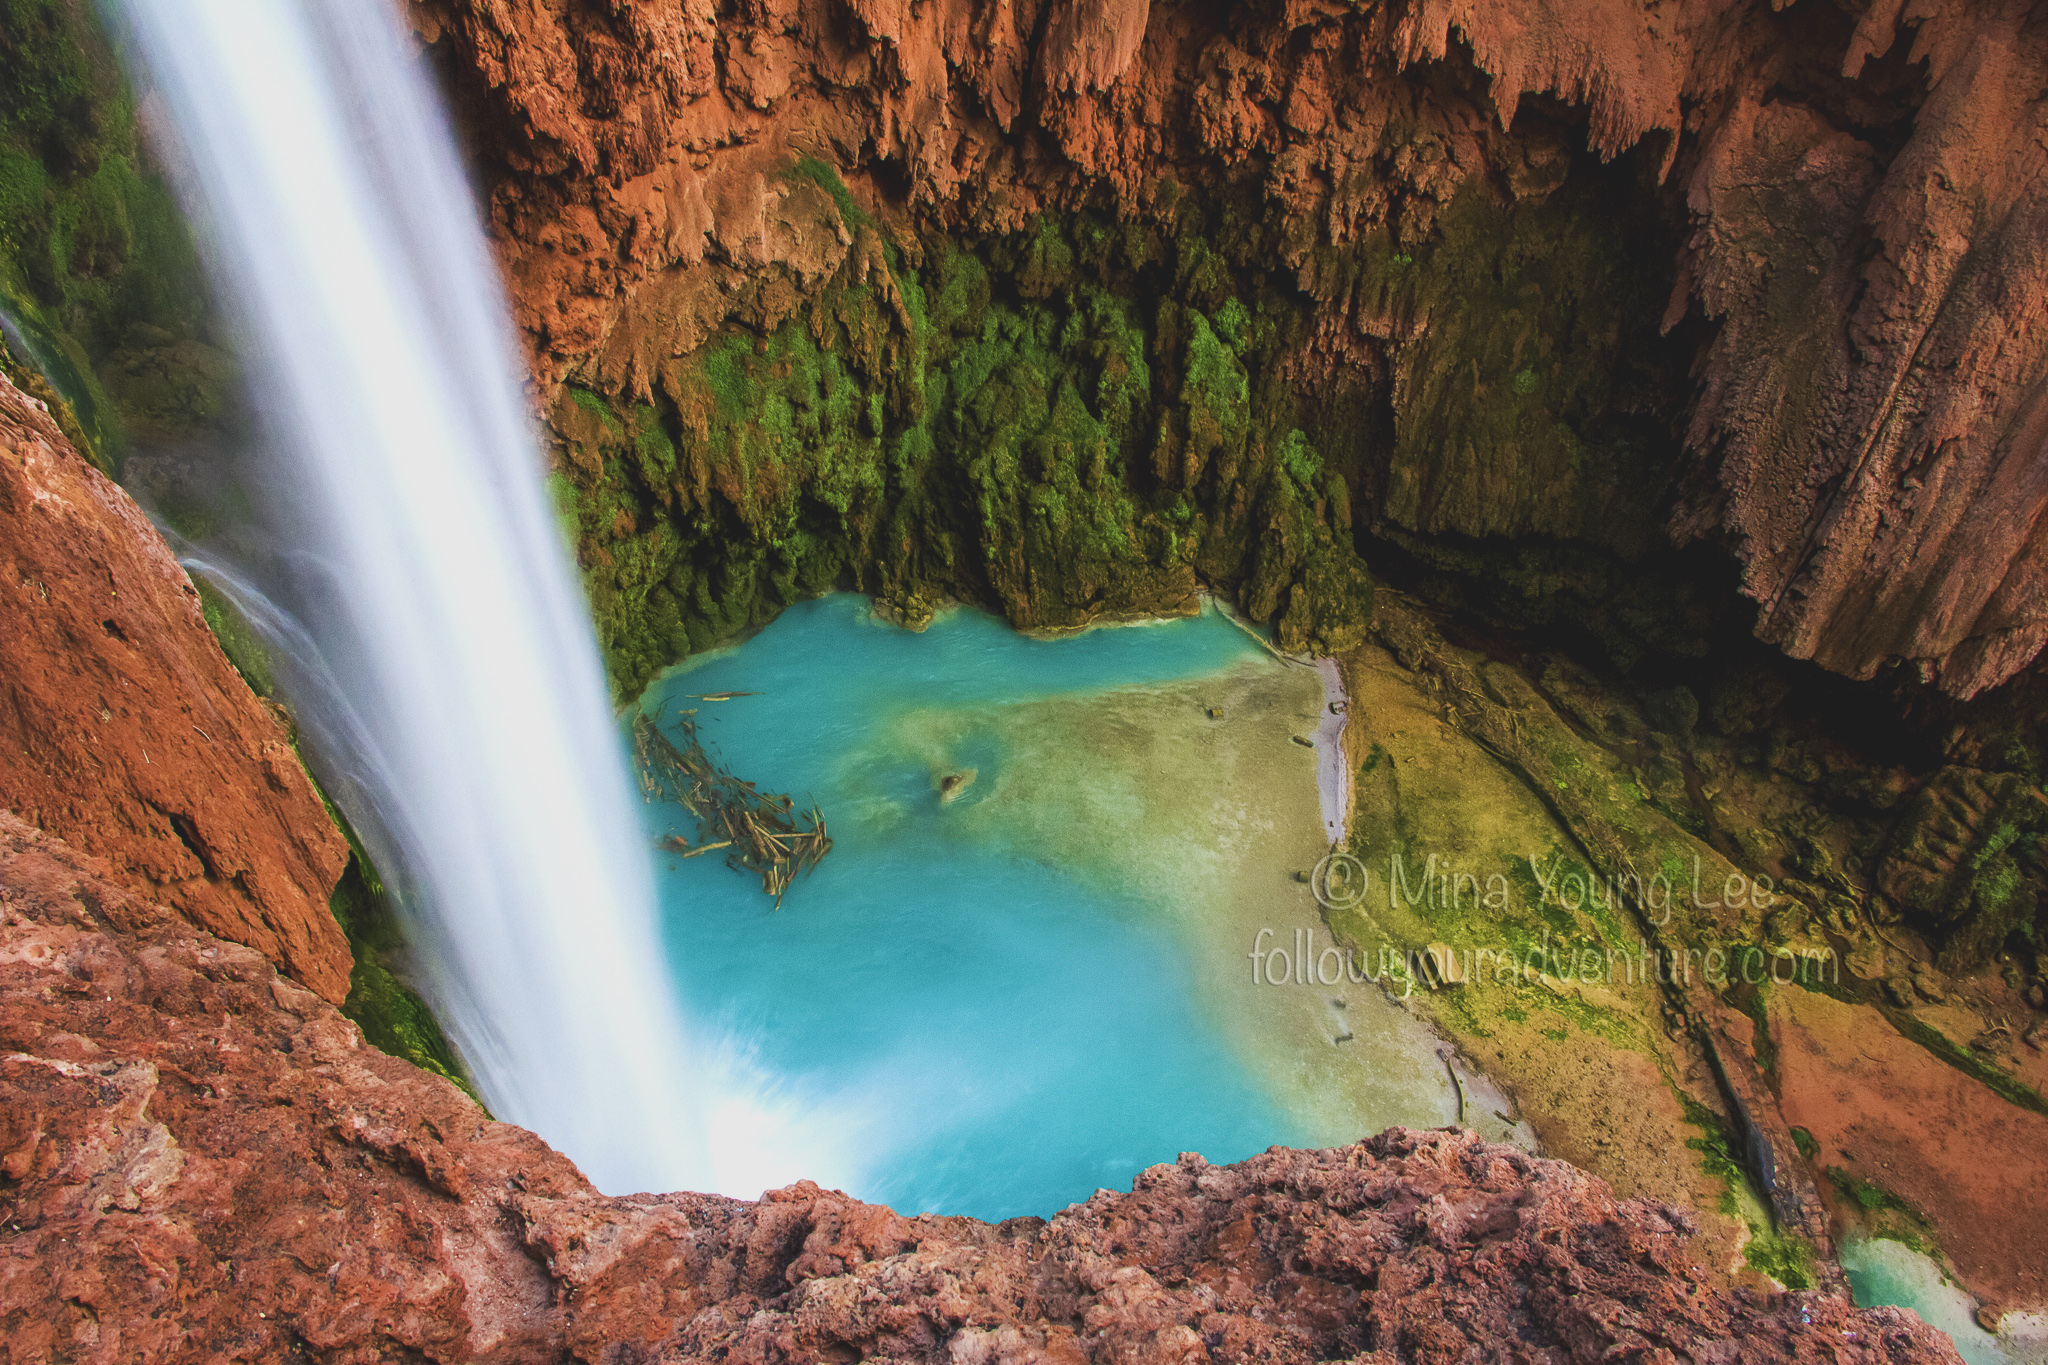 The debris at the bottom of Mooney Falls is a result of past flash floods  Photograph by Mina Young Lee